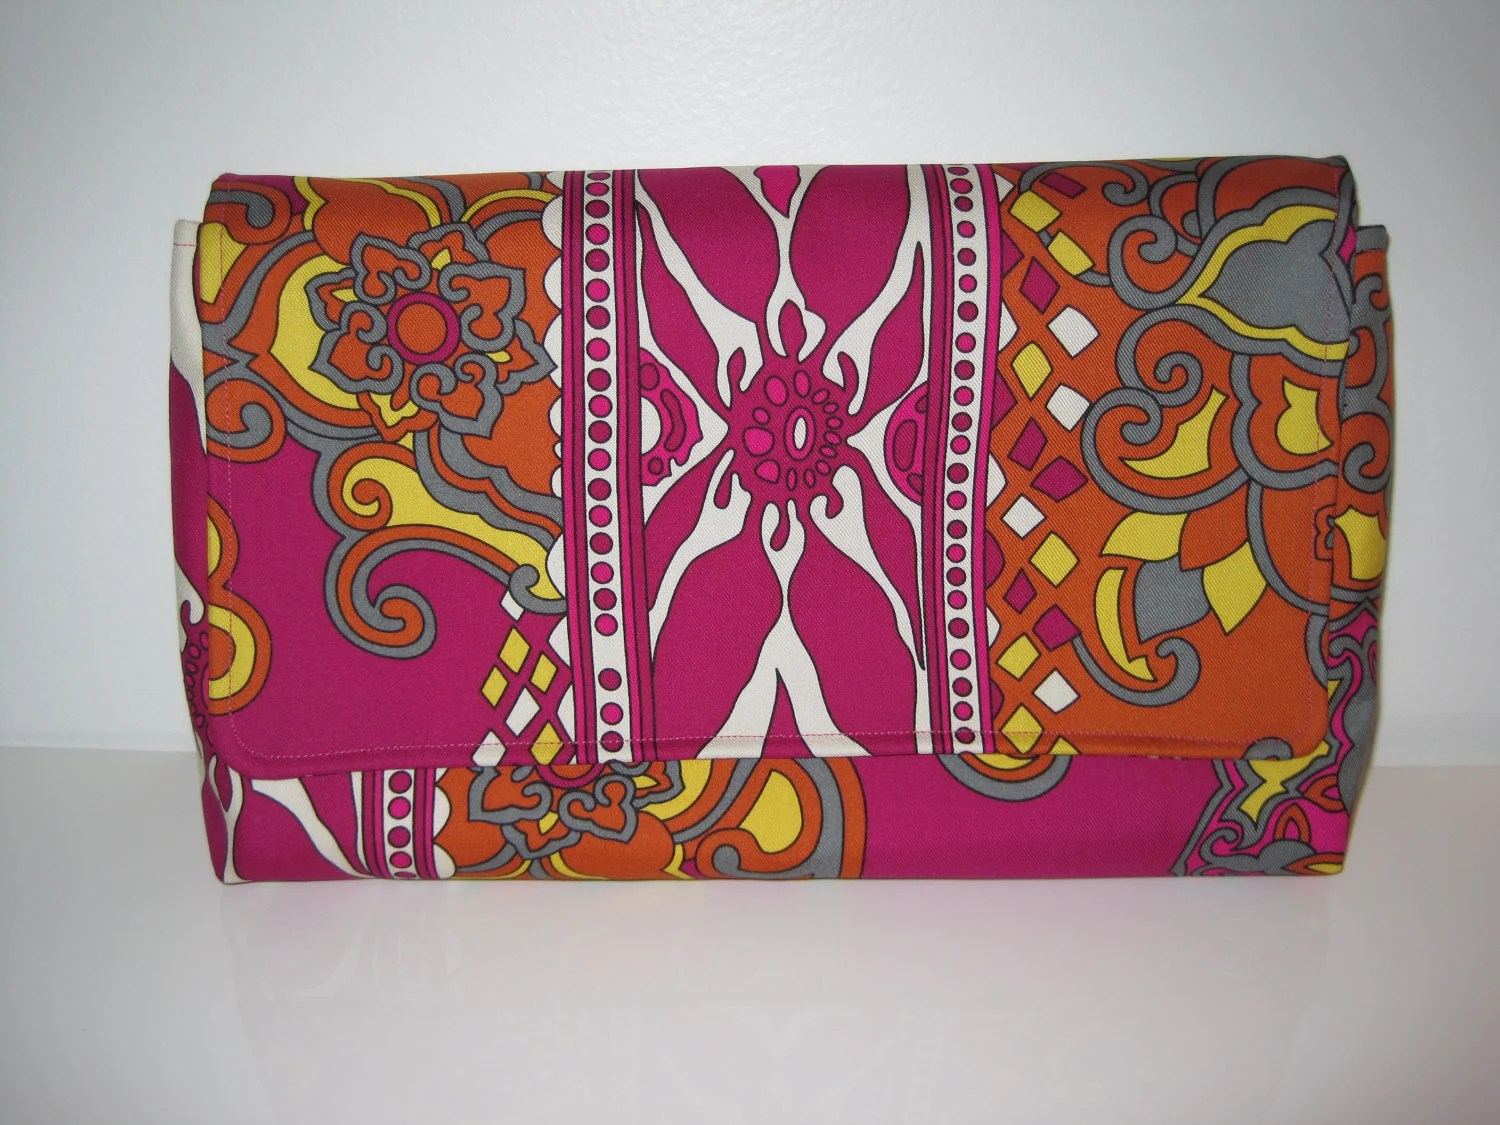 Hot Pink Silk Pucci-esque Printed Handmade Clutch